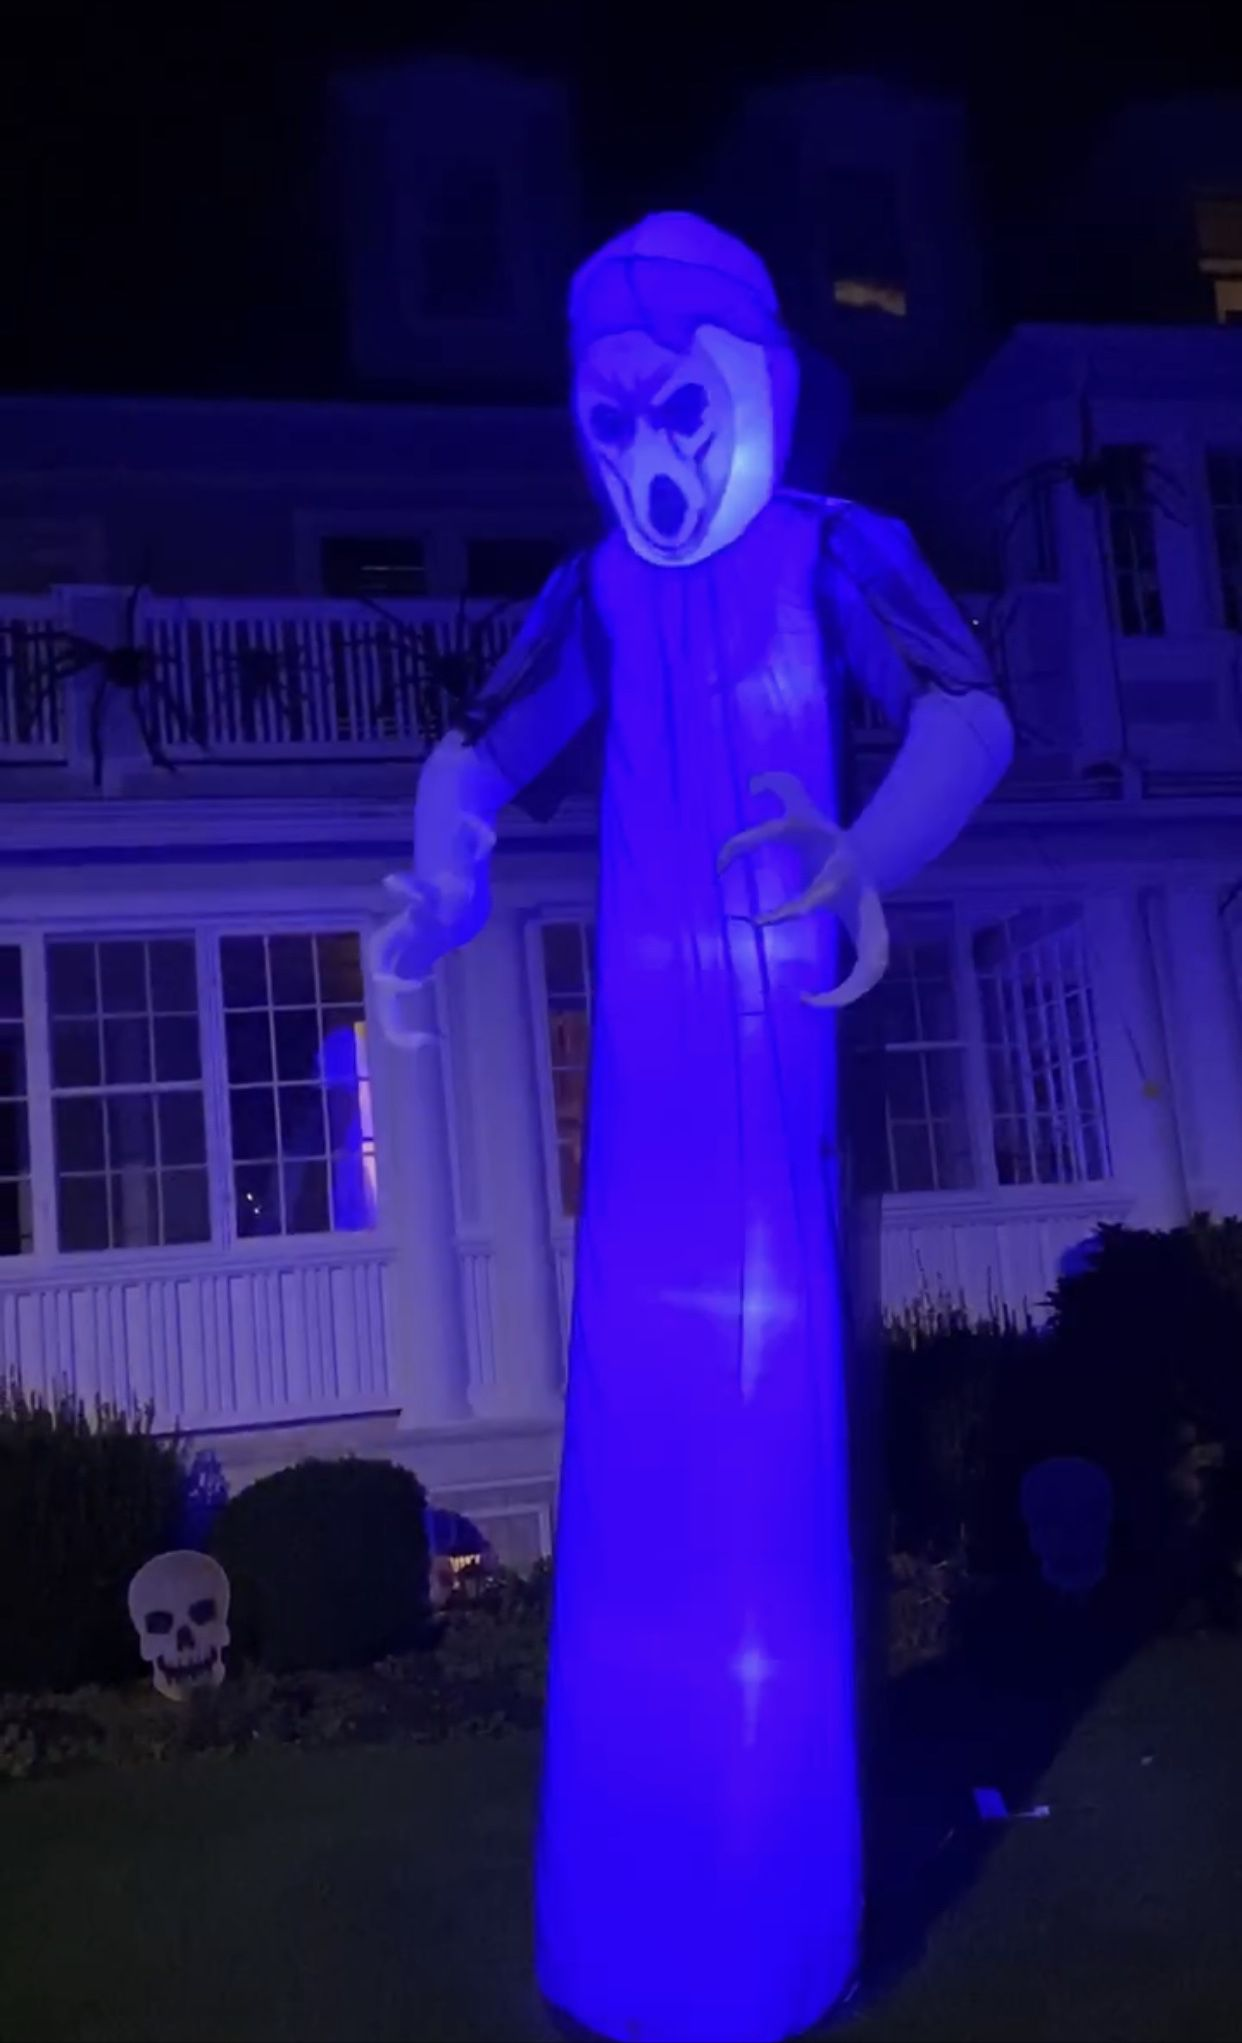 Airblown Lightshow Short Circuit Frightening Ghost Inflatable with Overlay Giant